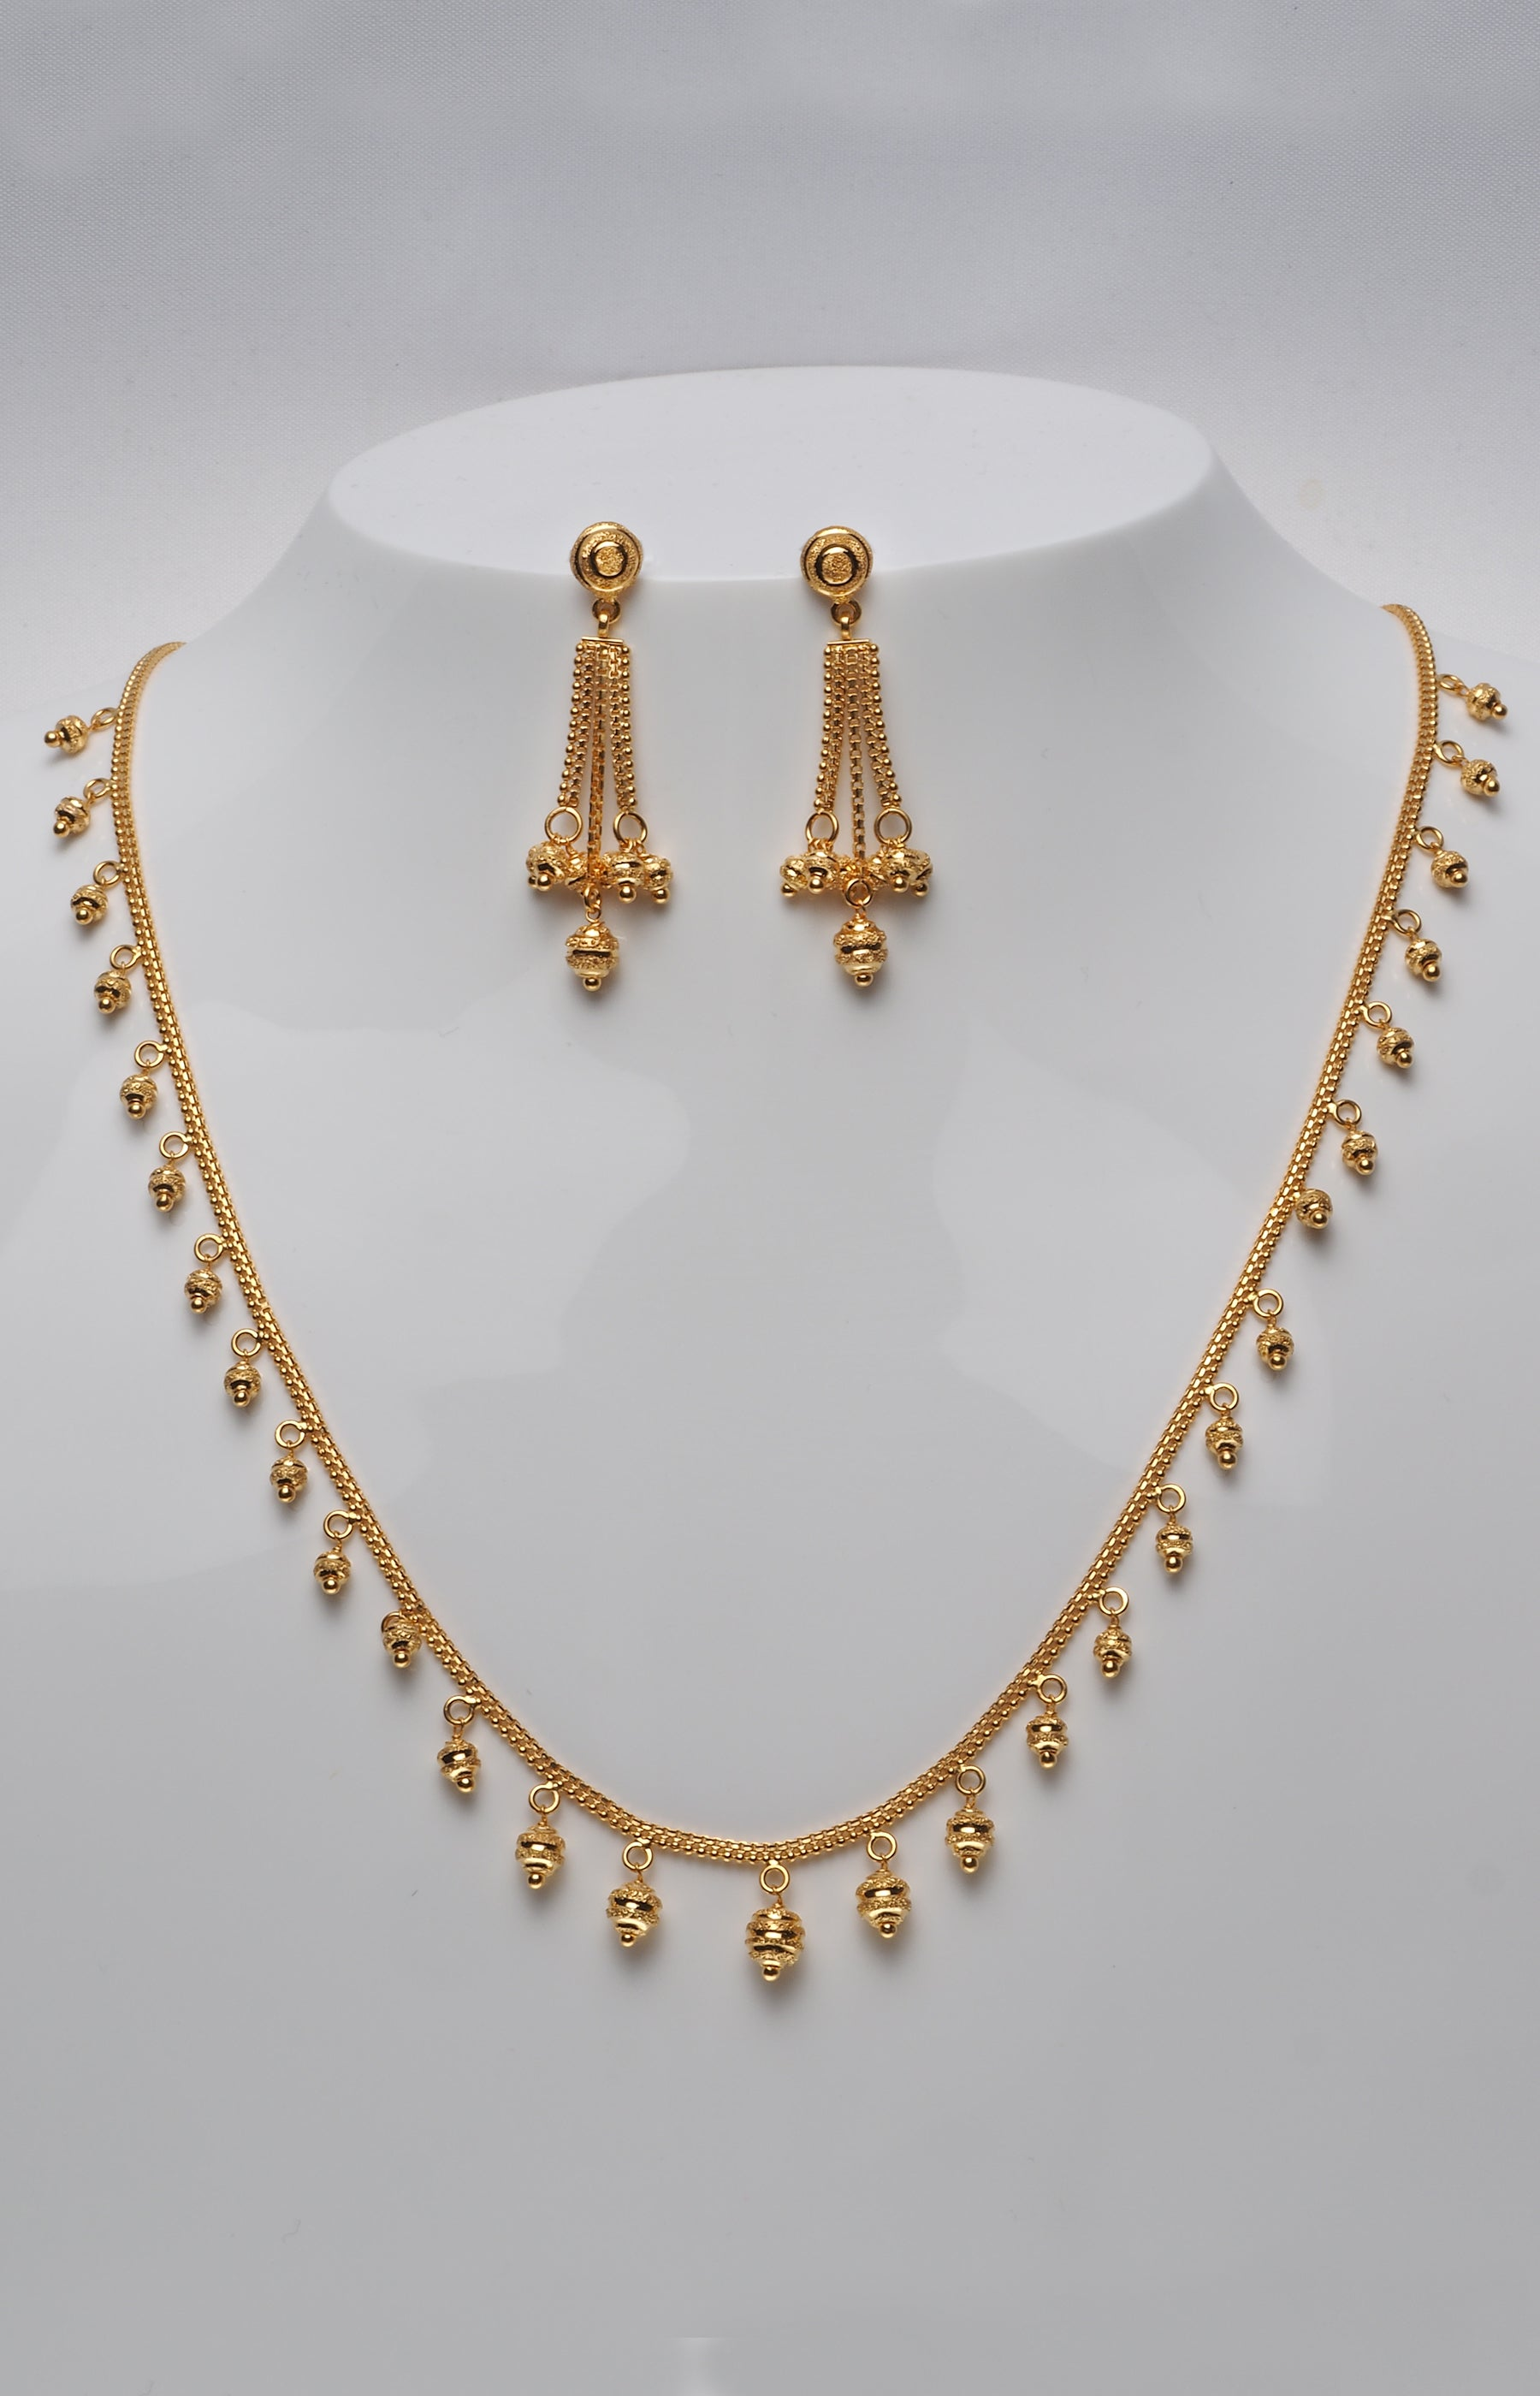 stylezog com with neck shop necklace necklaces long gold pendant